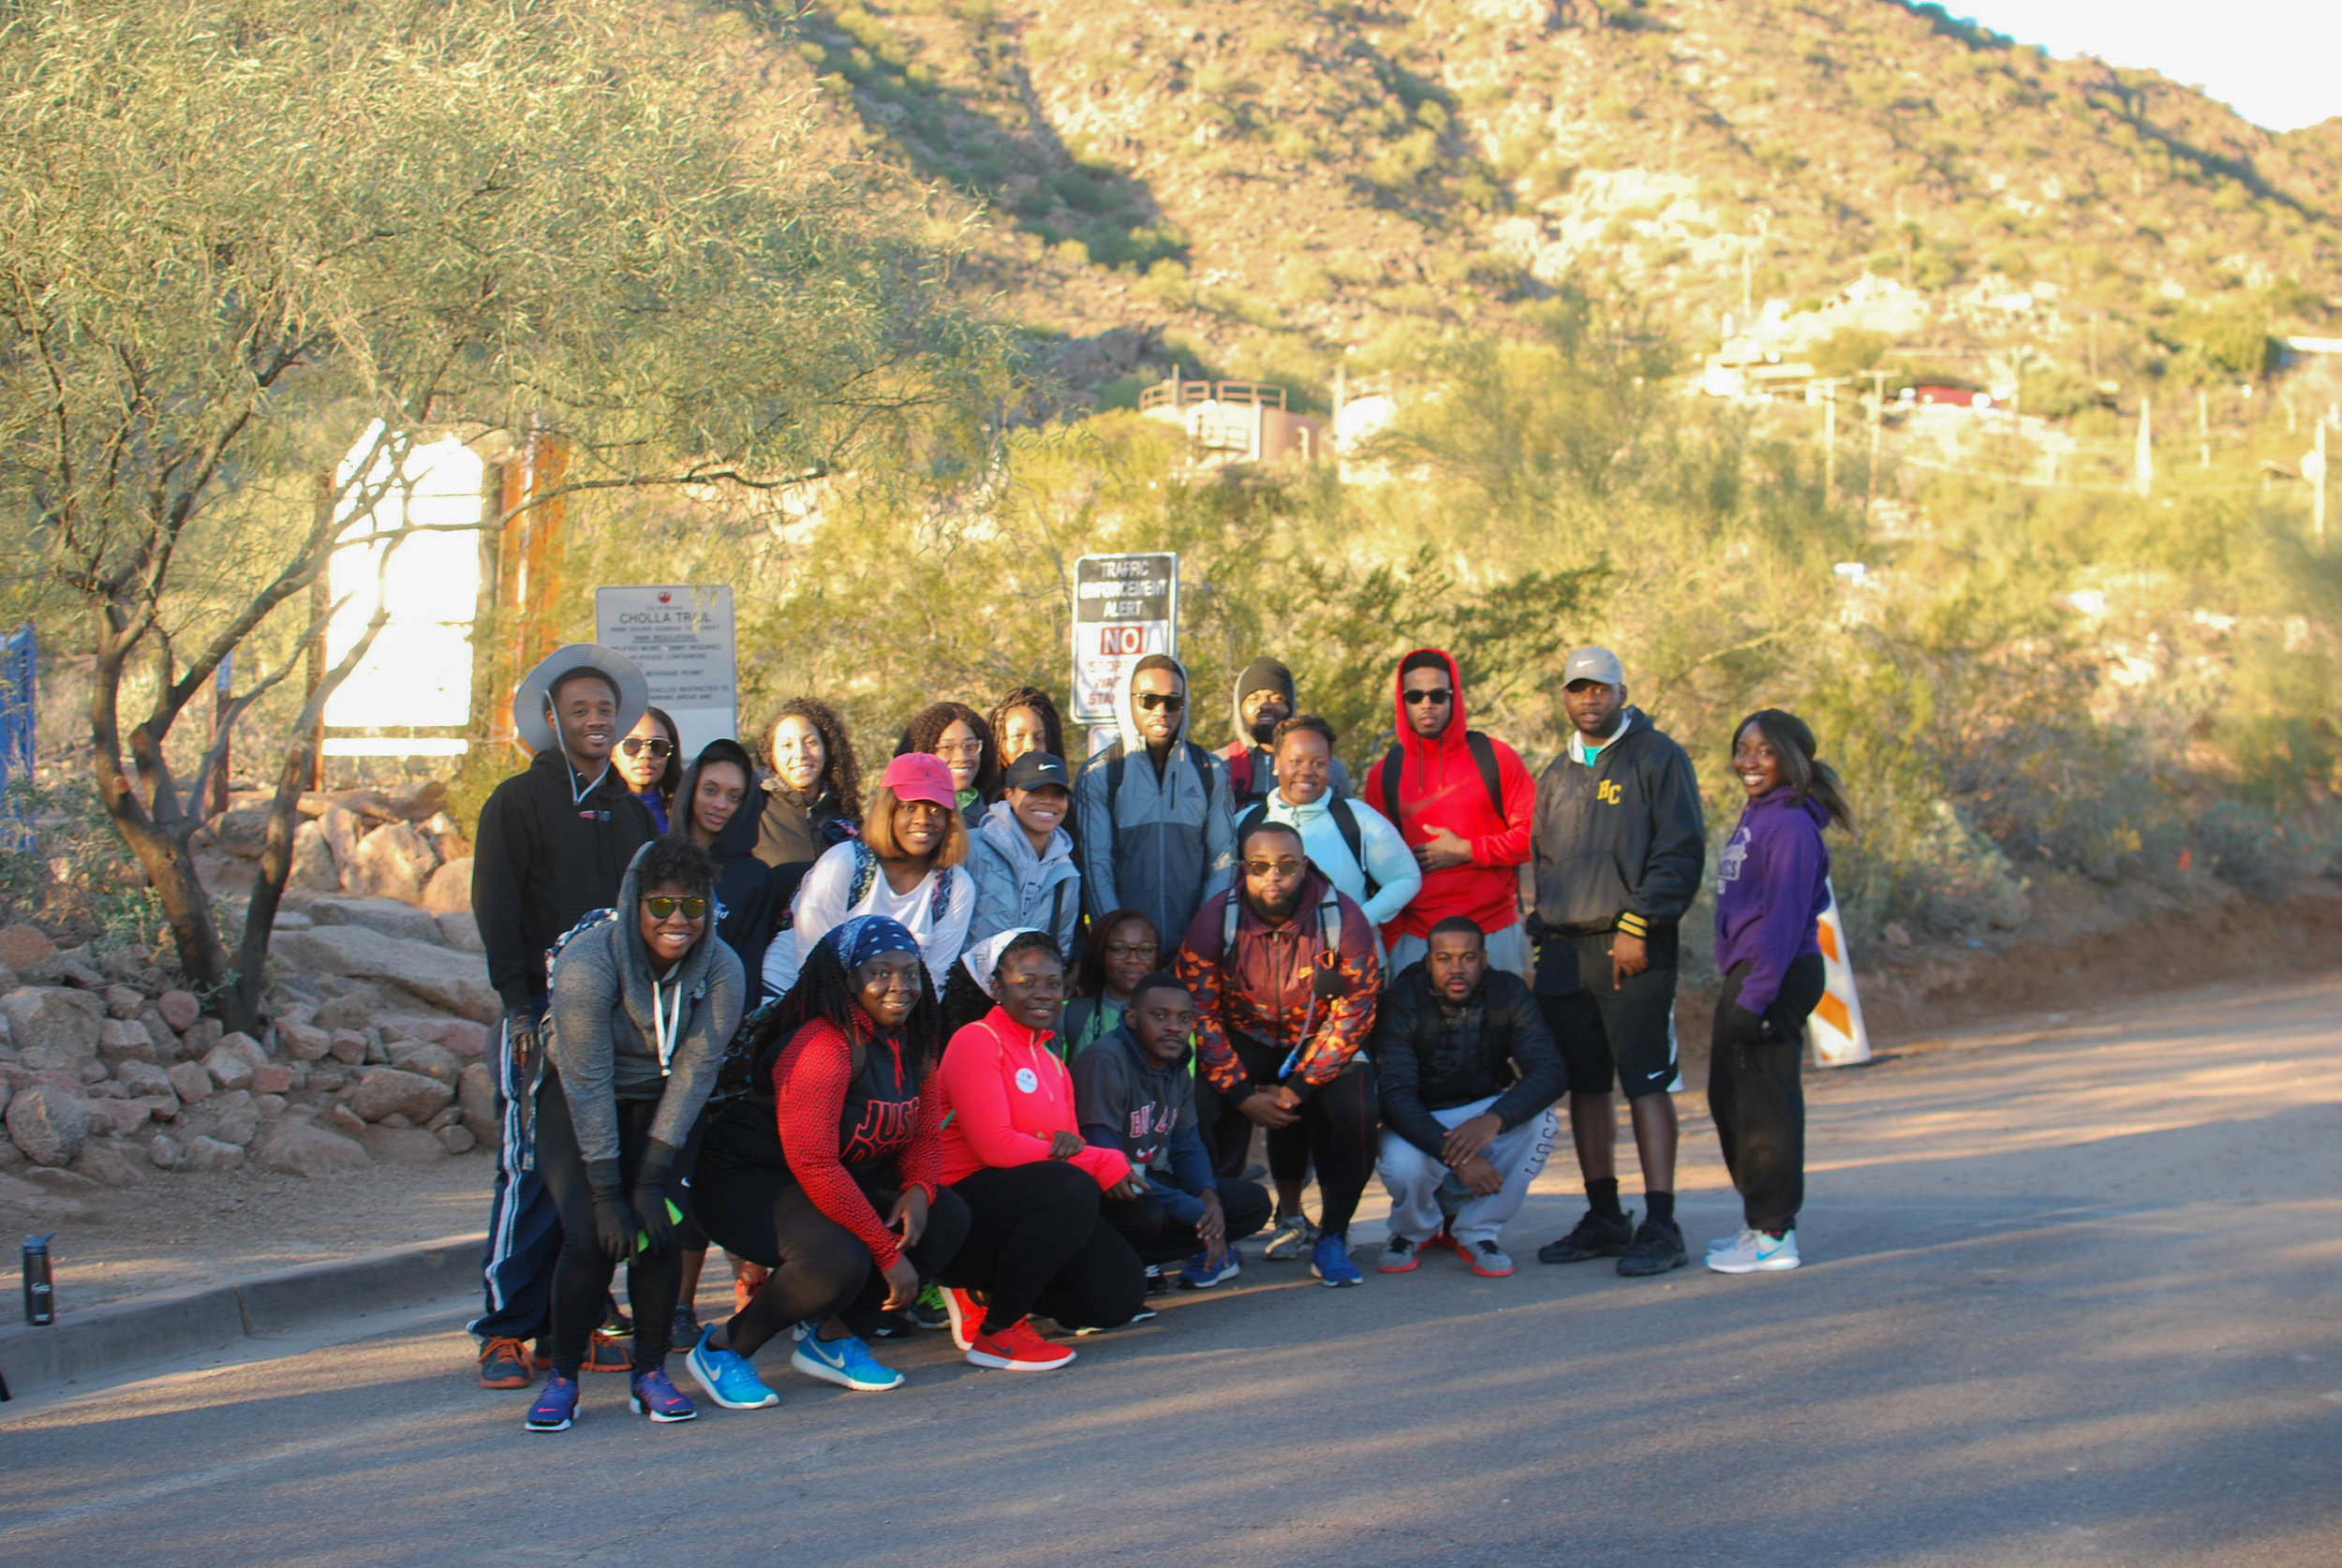 A group of (mostly) rookie hikers in Scottsdale, AZ, getting ready to hike Camelback Mountain!